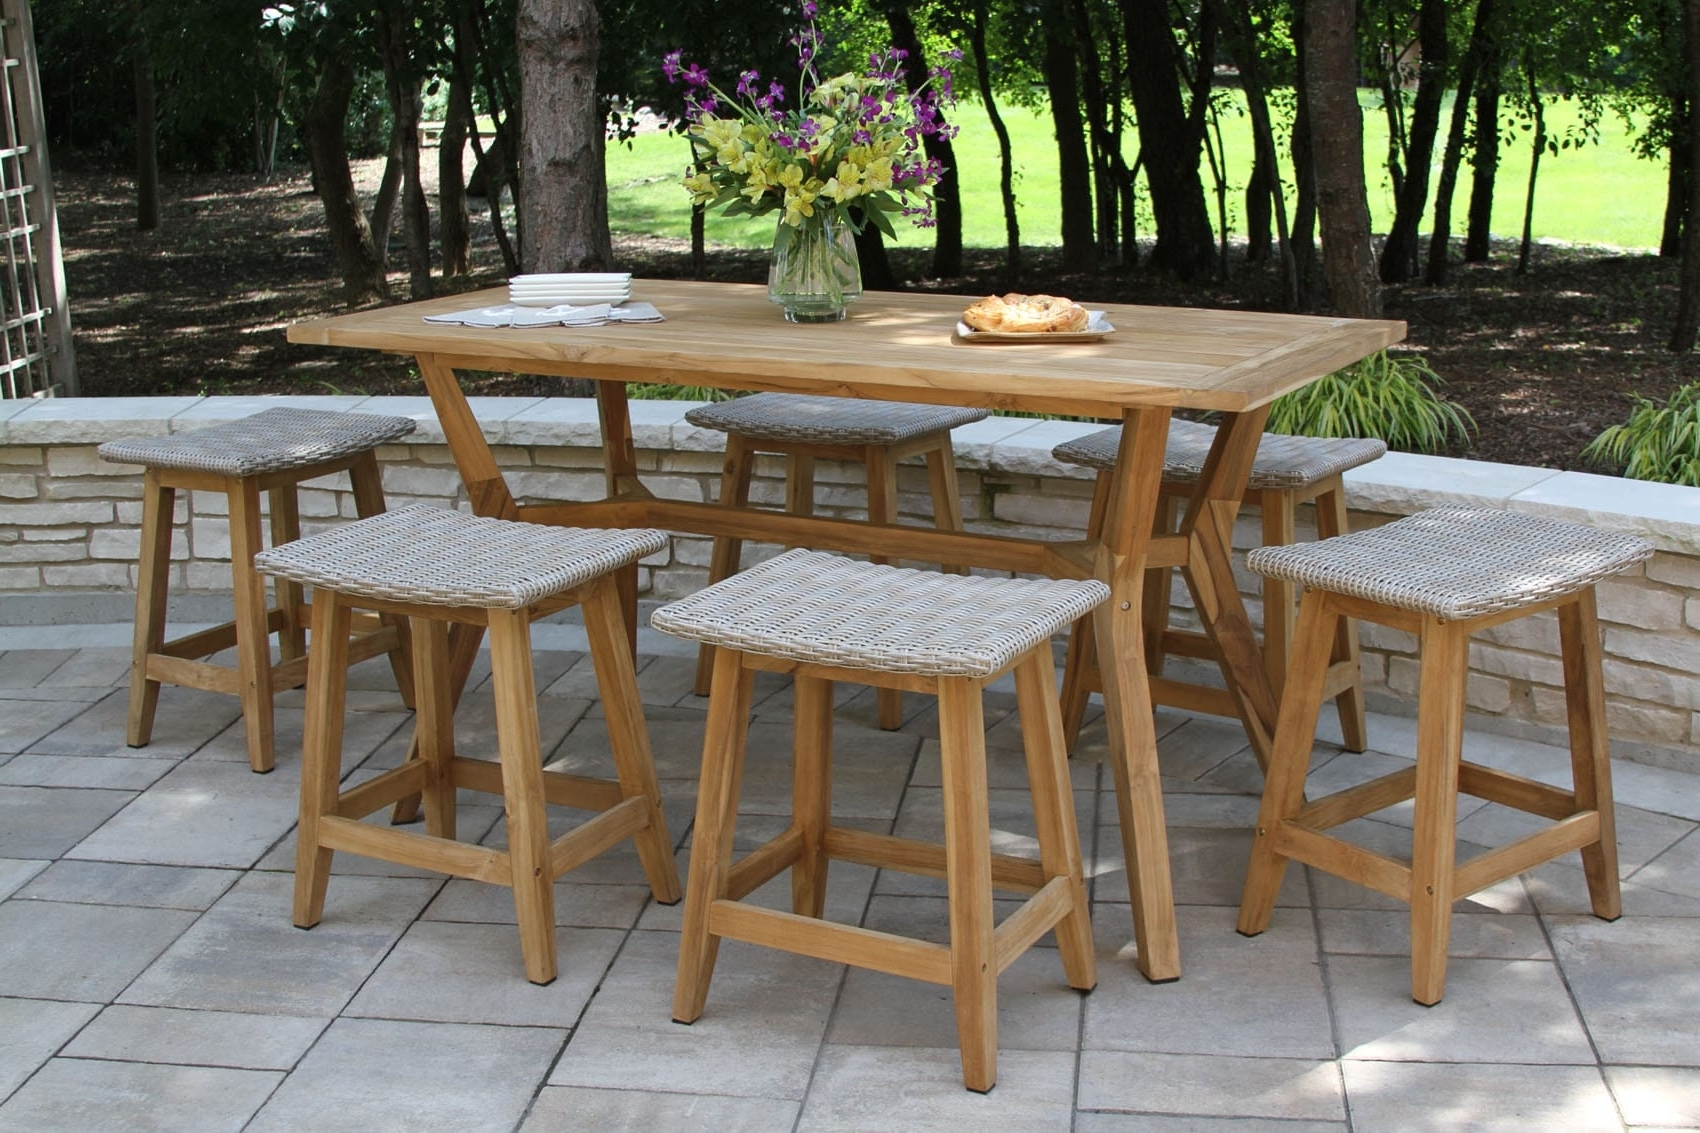 Teak & Wicker Furniture Collection From Outdoor Interiors Throughout Well Liked Outdoor Brasilia Teak High Dining Tables (View 5 of 25)